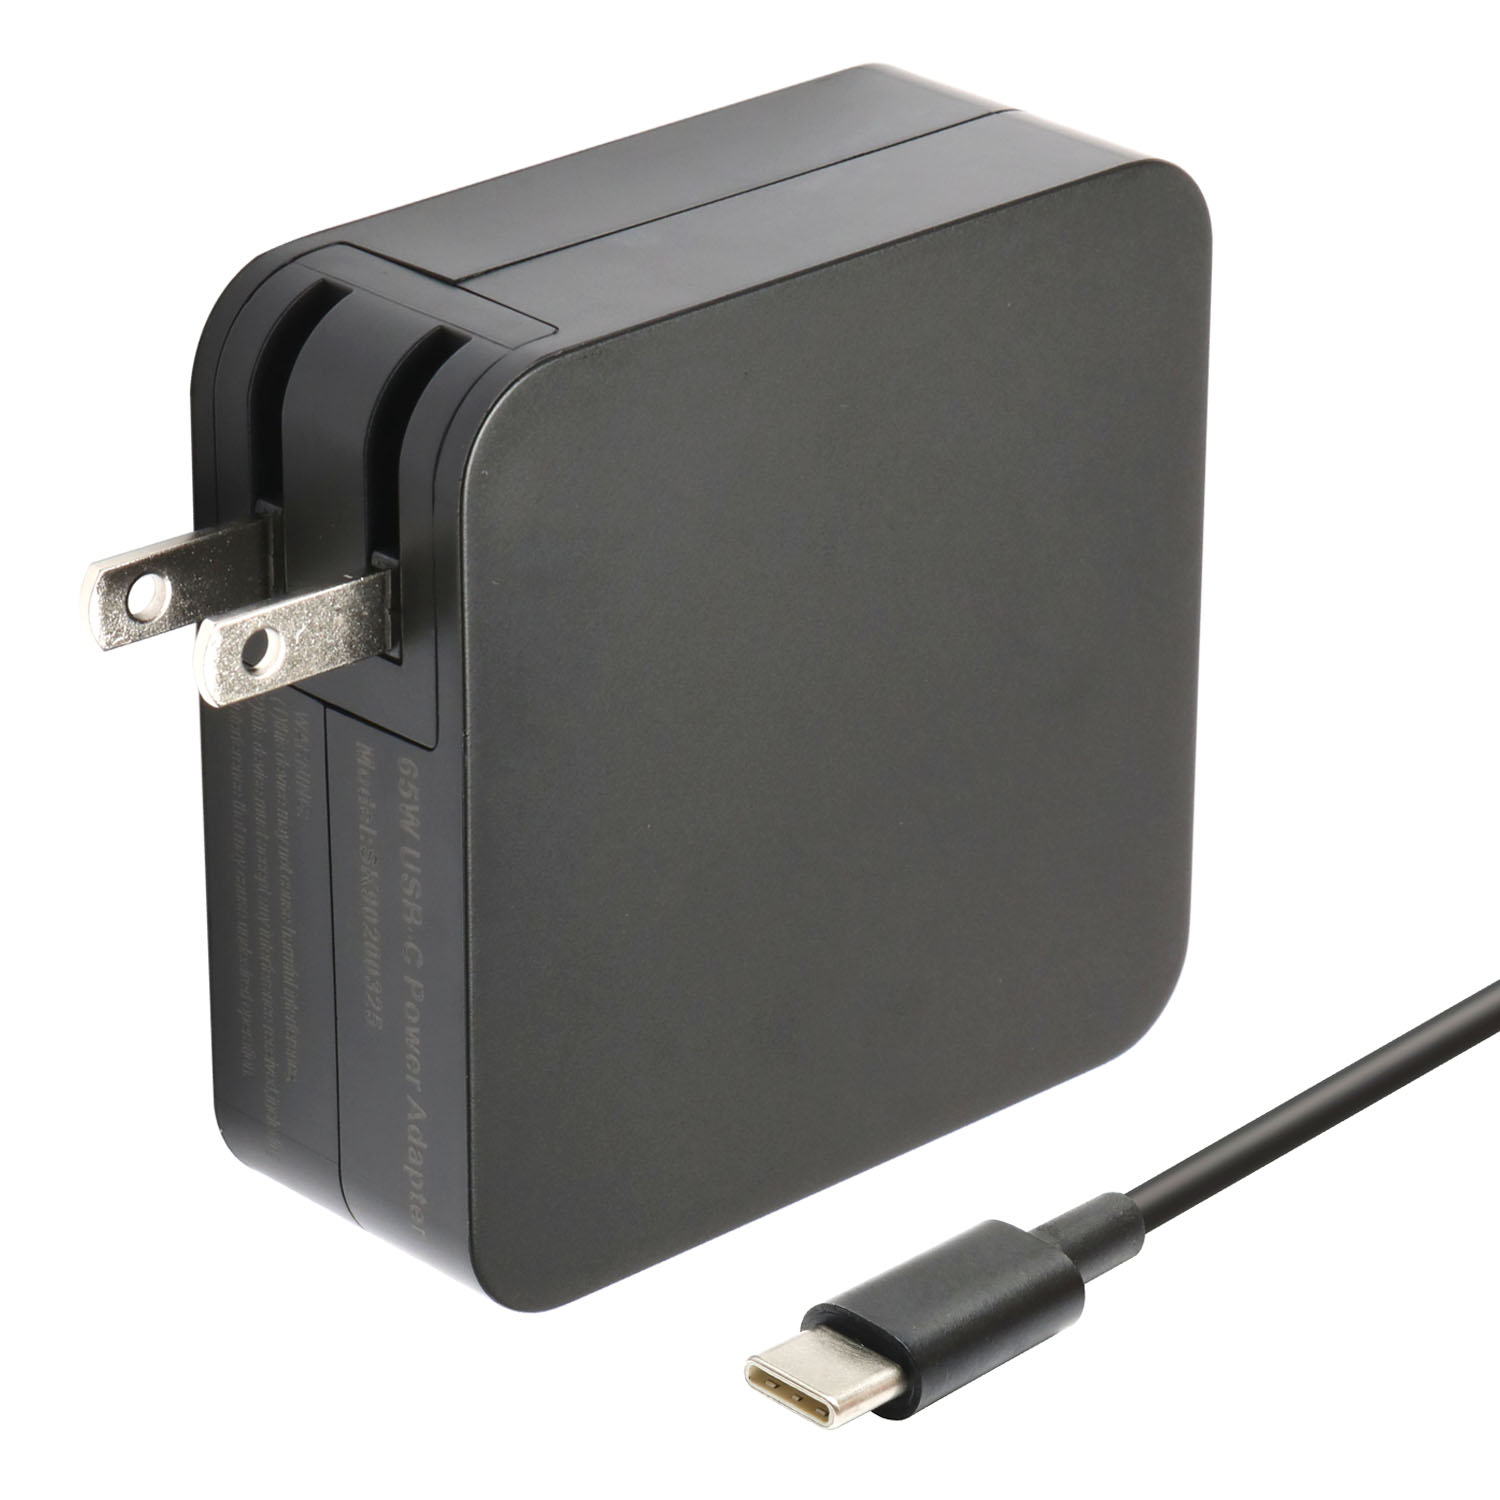 The new model is suitable for Asus AS power supply 65W-20V3.25A-TYPE-C square black computer power adapter